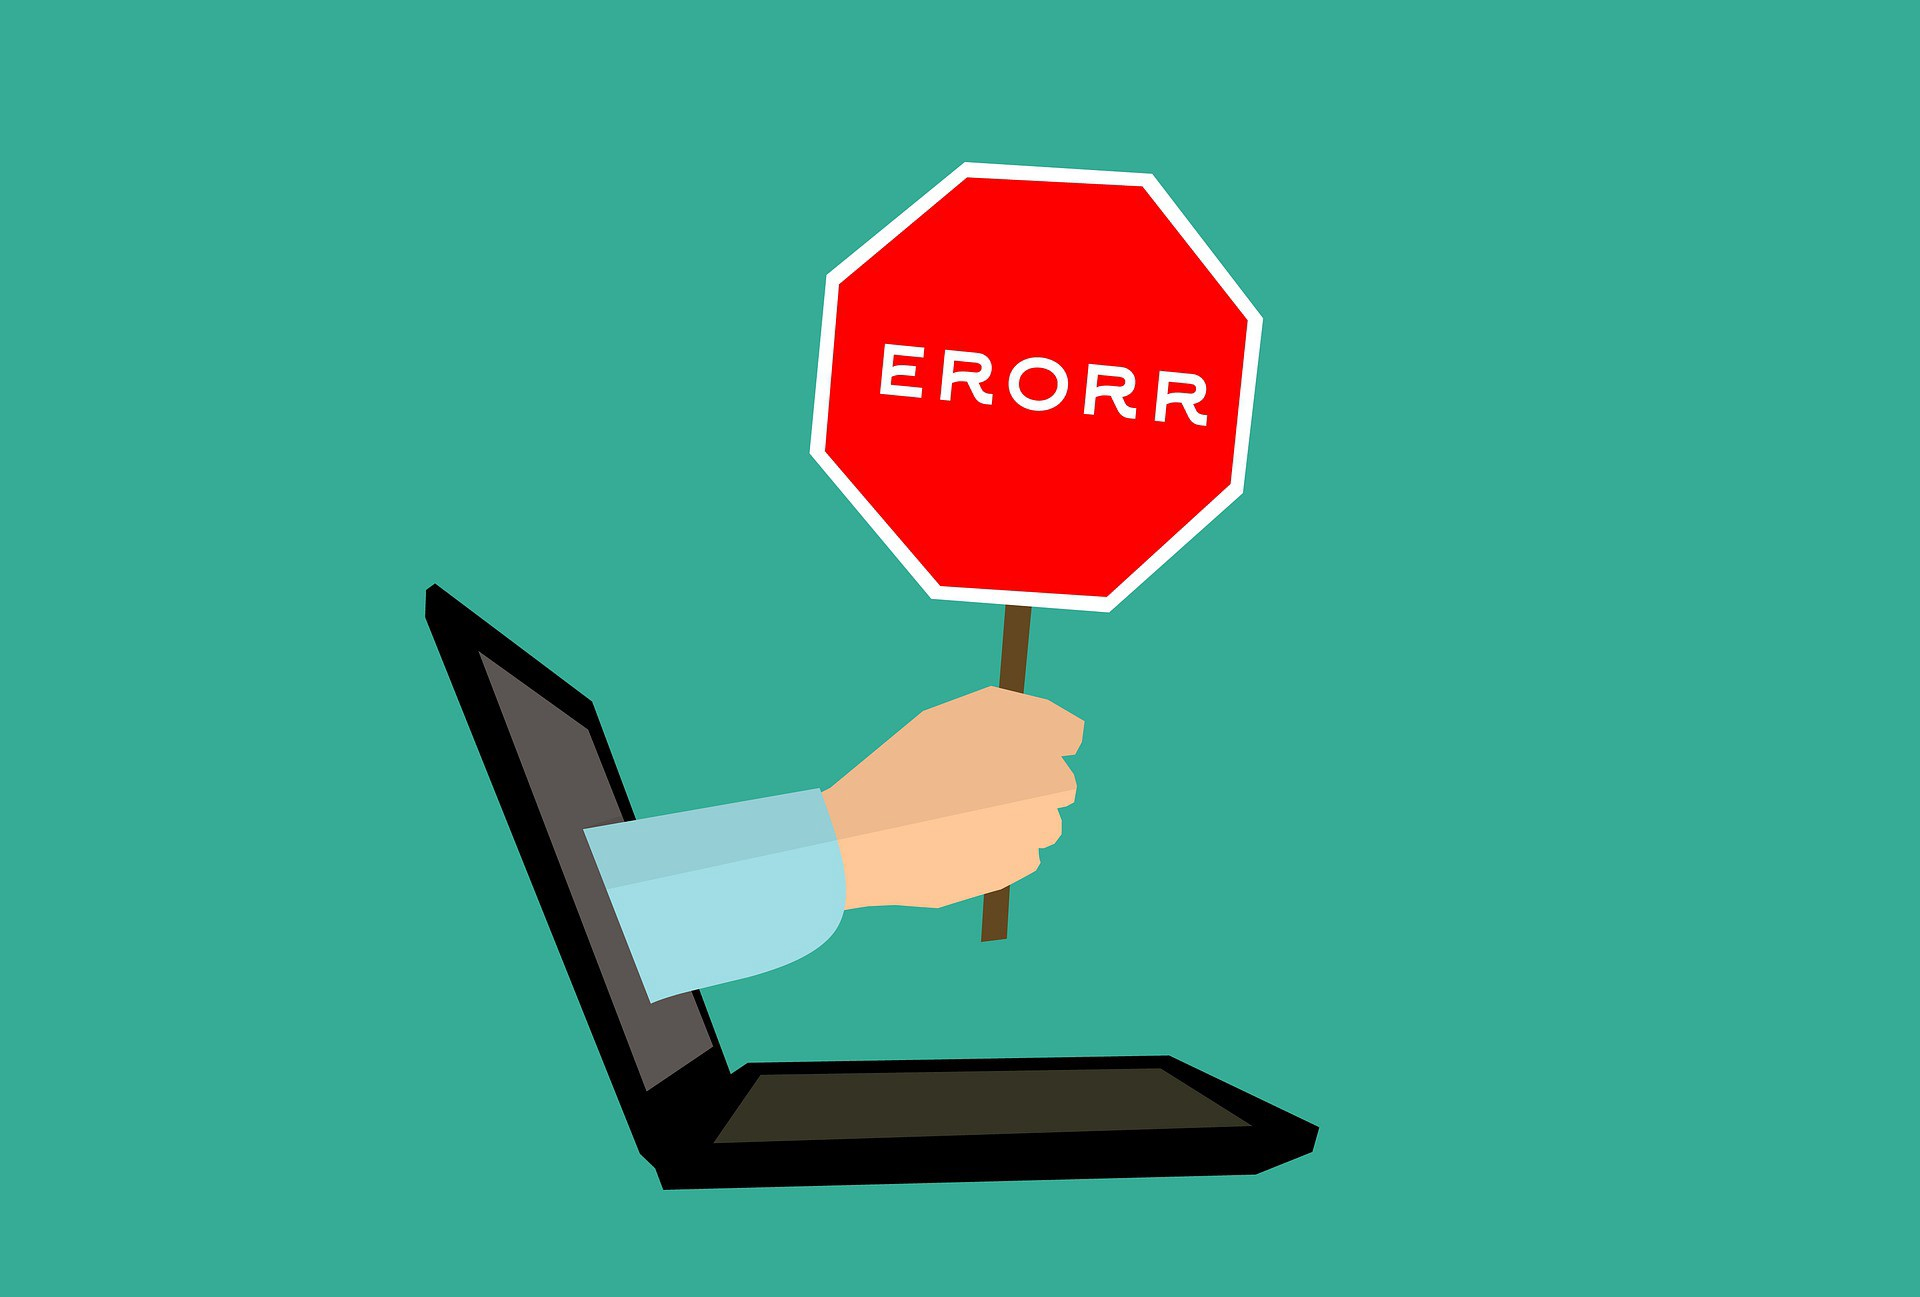 HTTP Status/Error Codes and How to fix them